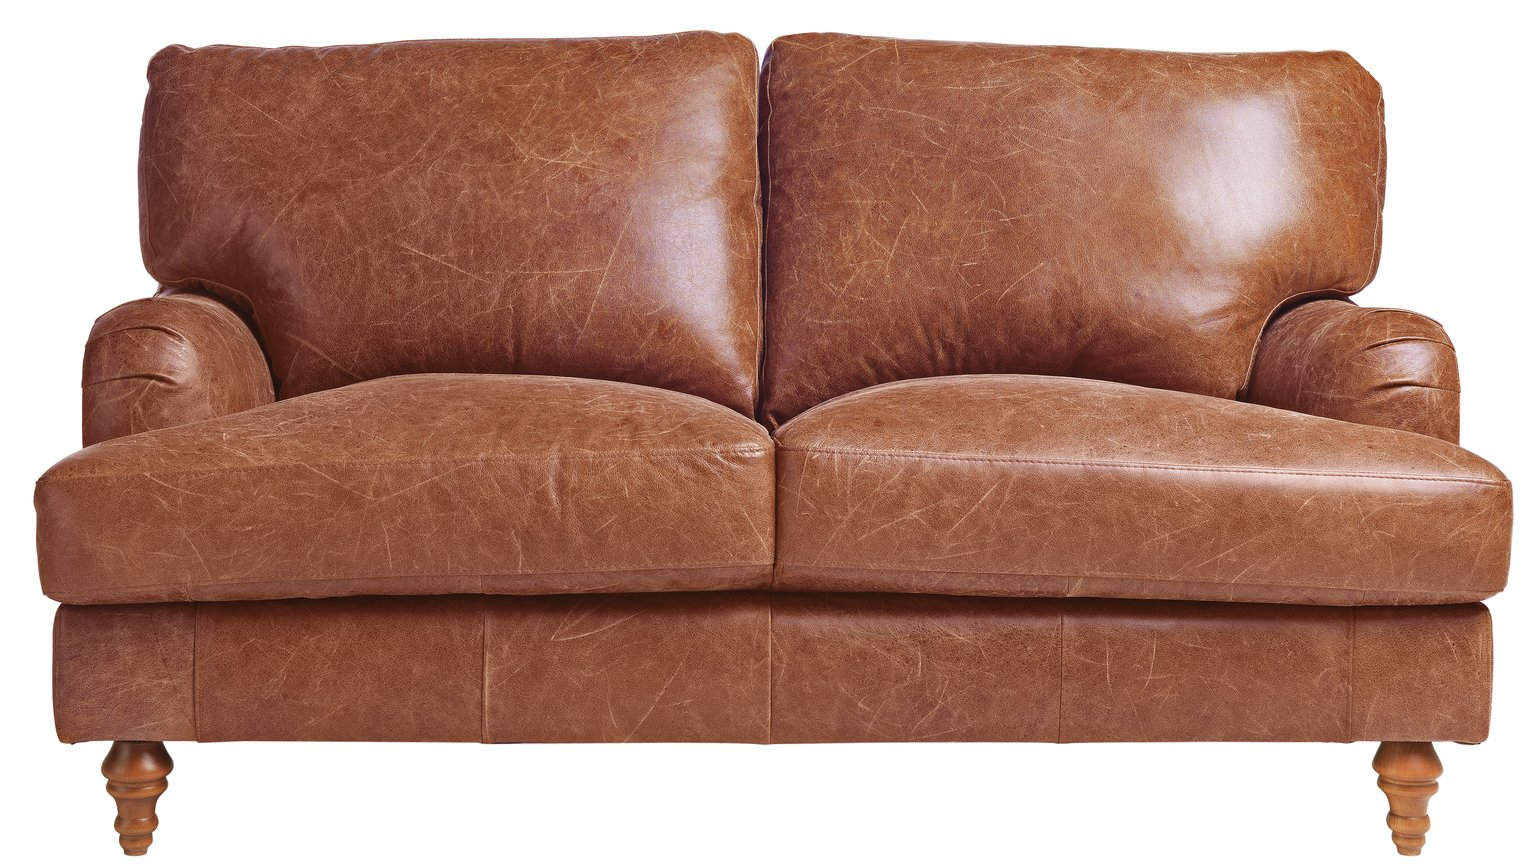 Heart of House - Livingston 2 Seater - Leather Sofa - Tan